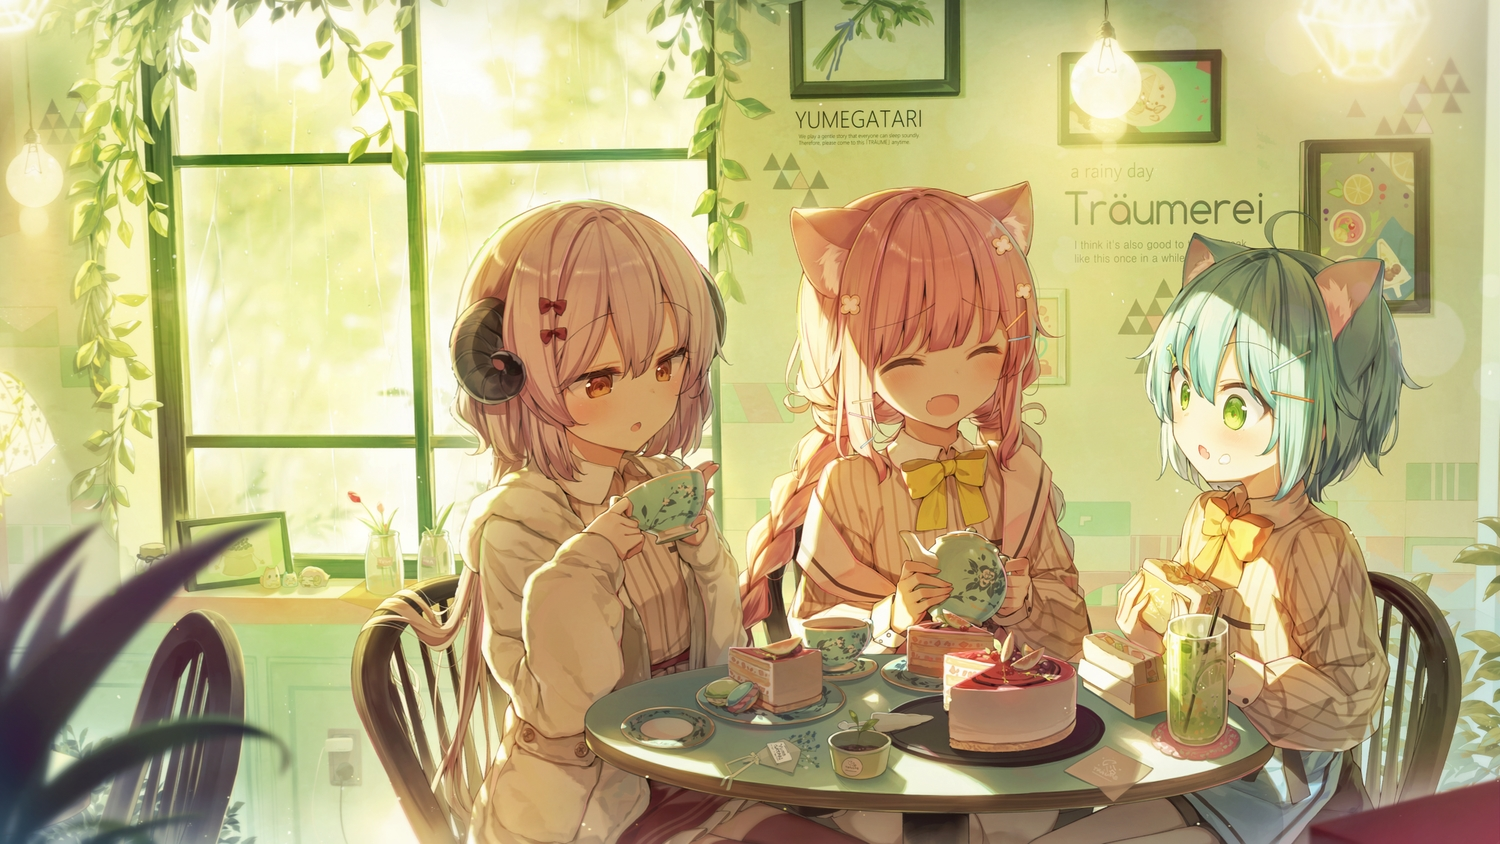 animal_ears cake catgirl drink food green_eyes green_hair horns long_hair orange_eyes original pink_hair shinoba short_hair shorts thighhighs twintails